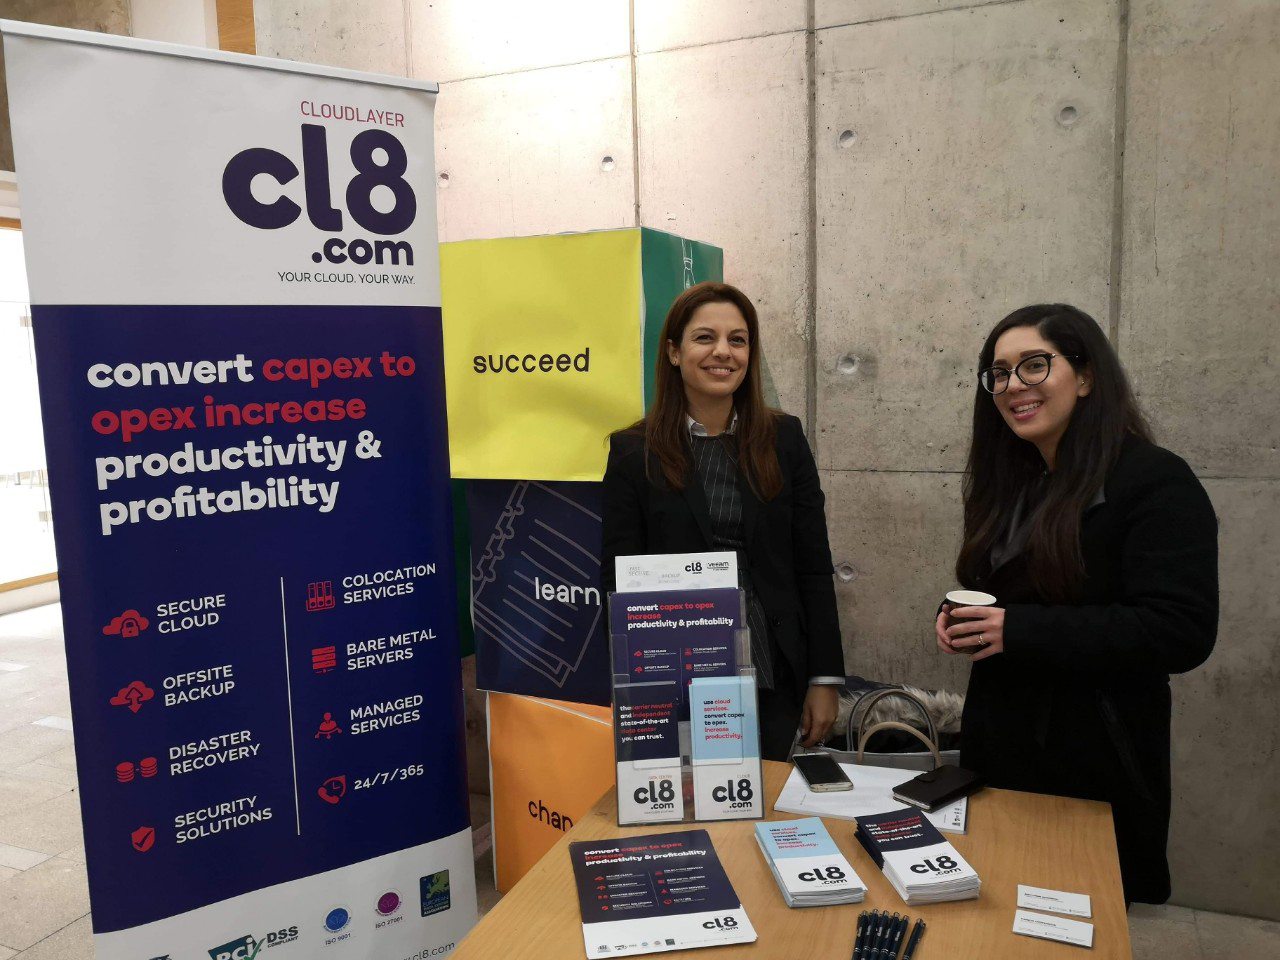 cl8-com-sponsors-conference-for-start-ups-and-agile-in-cyprus